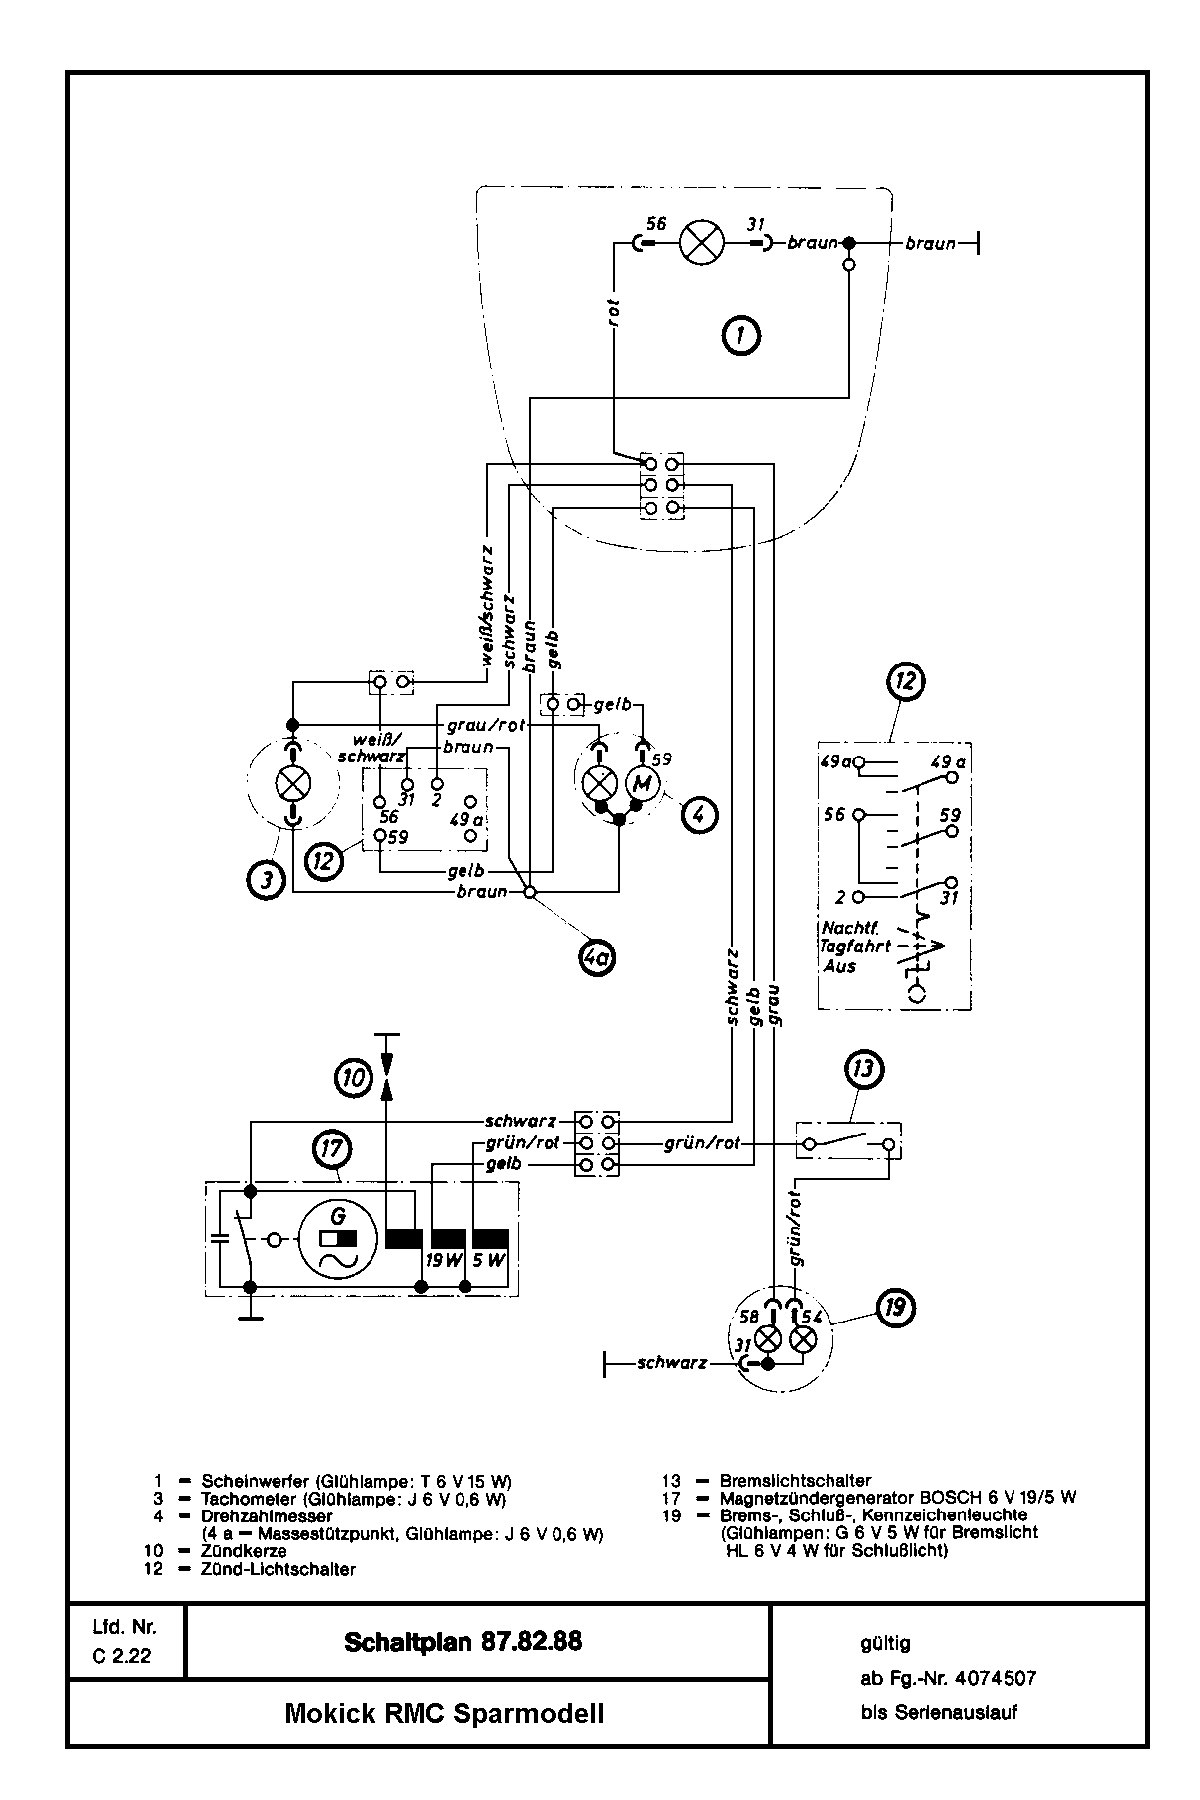 Wiring Diagram For 1968 Mustang Wiring Diagram For 67